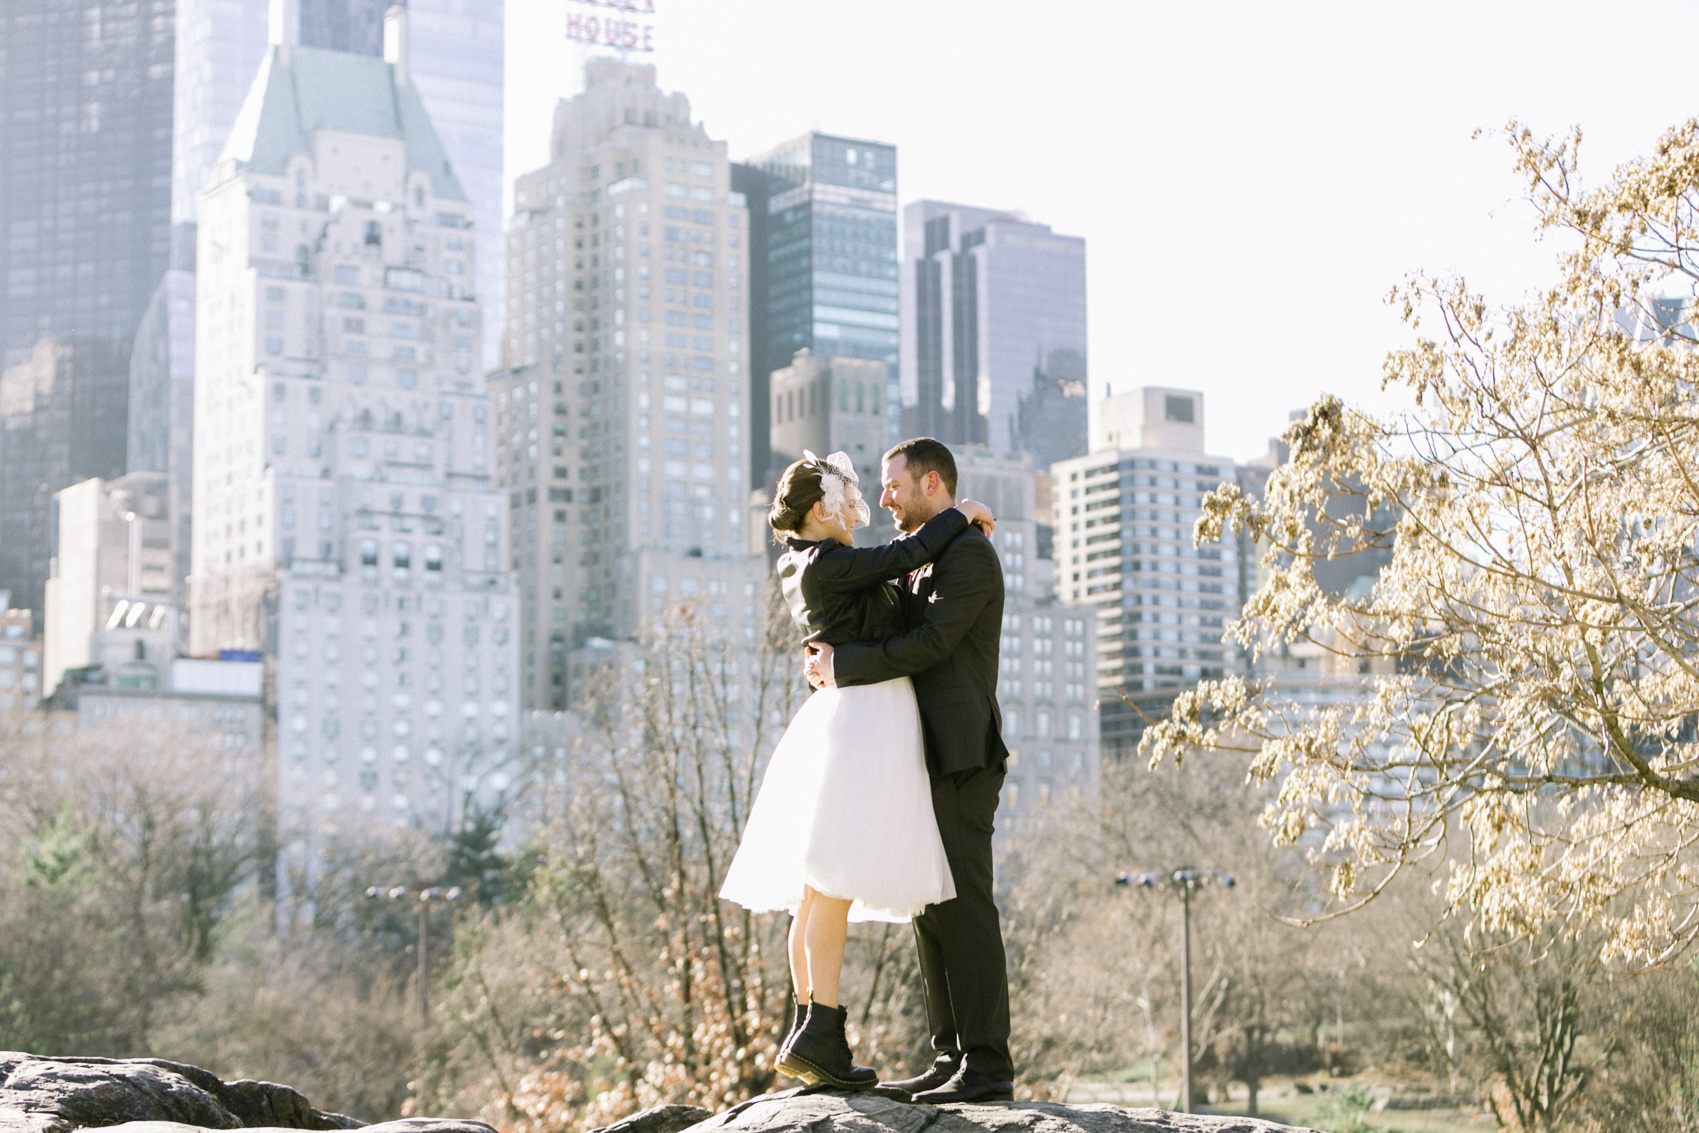 NYC-wedding-photos-by-Tanya-Isaeva-21.jpg